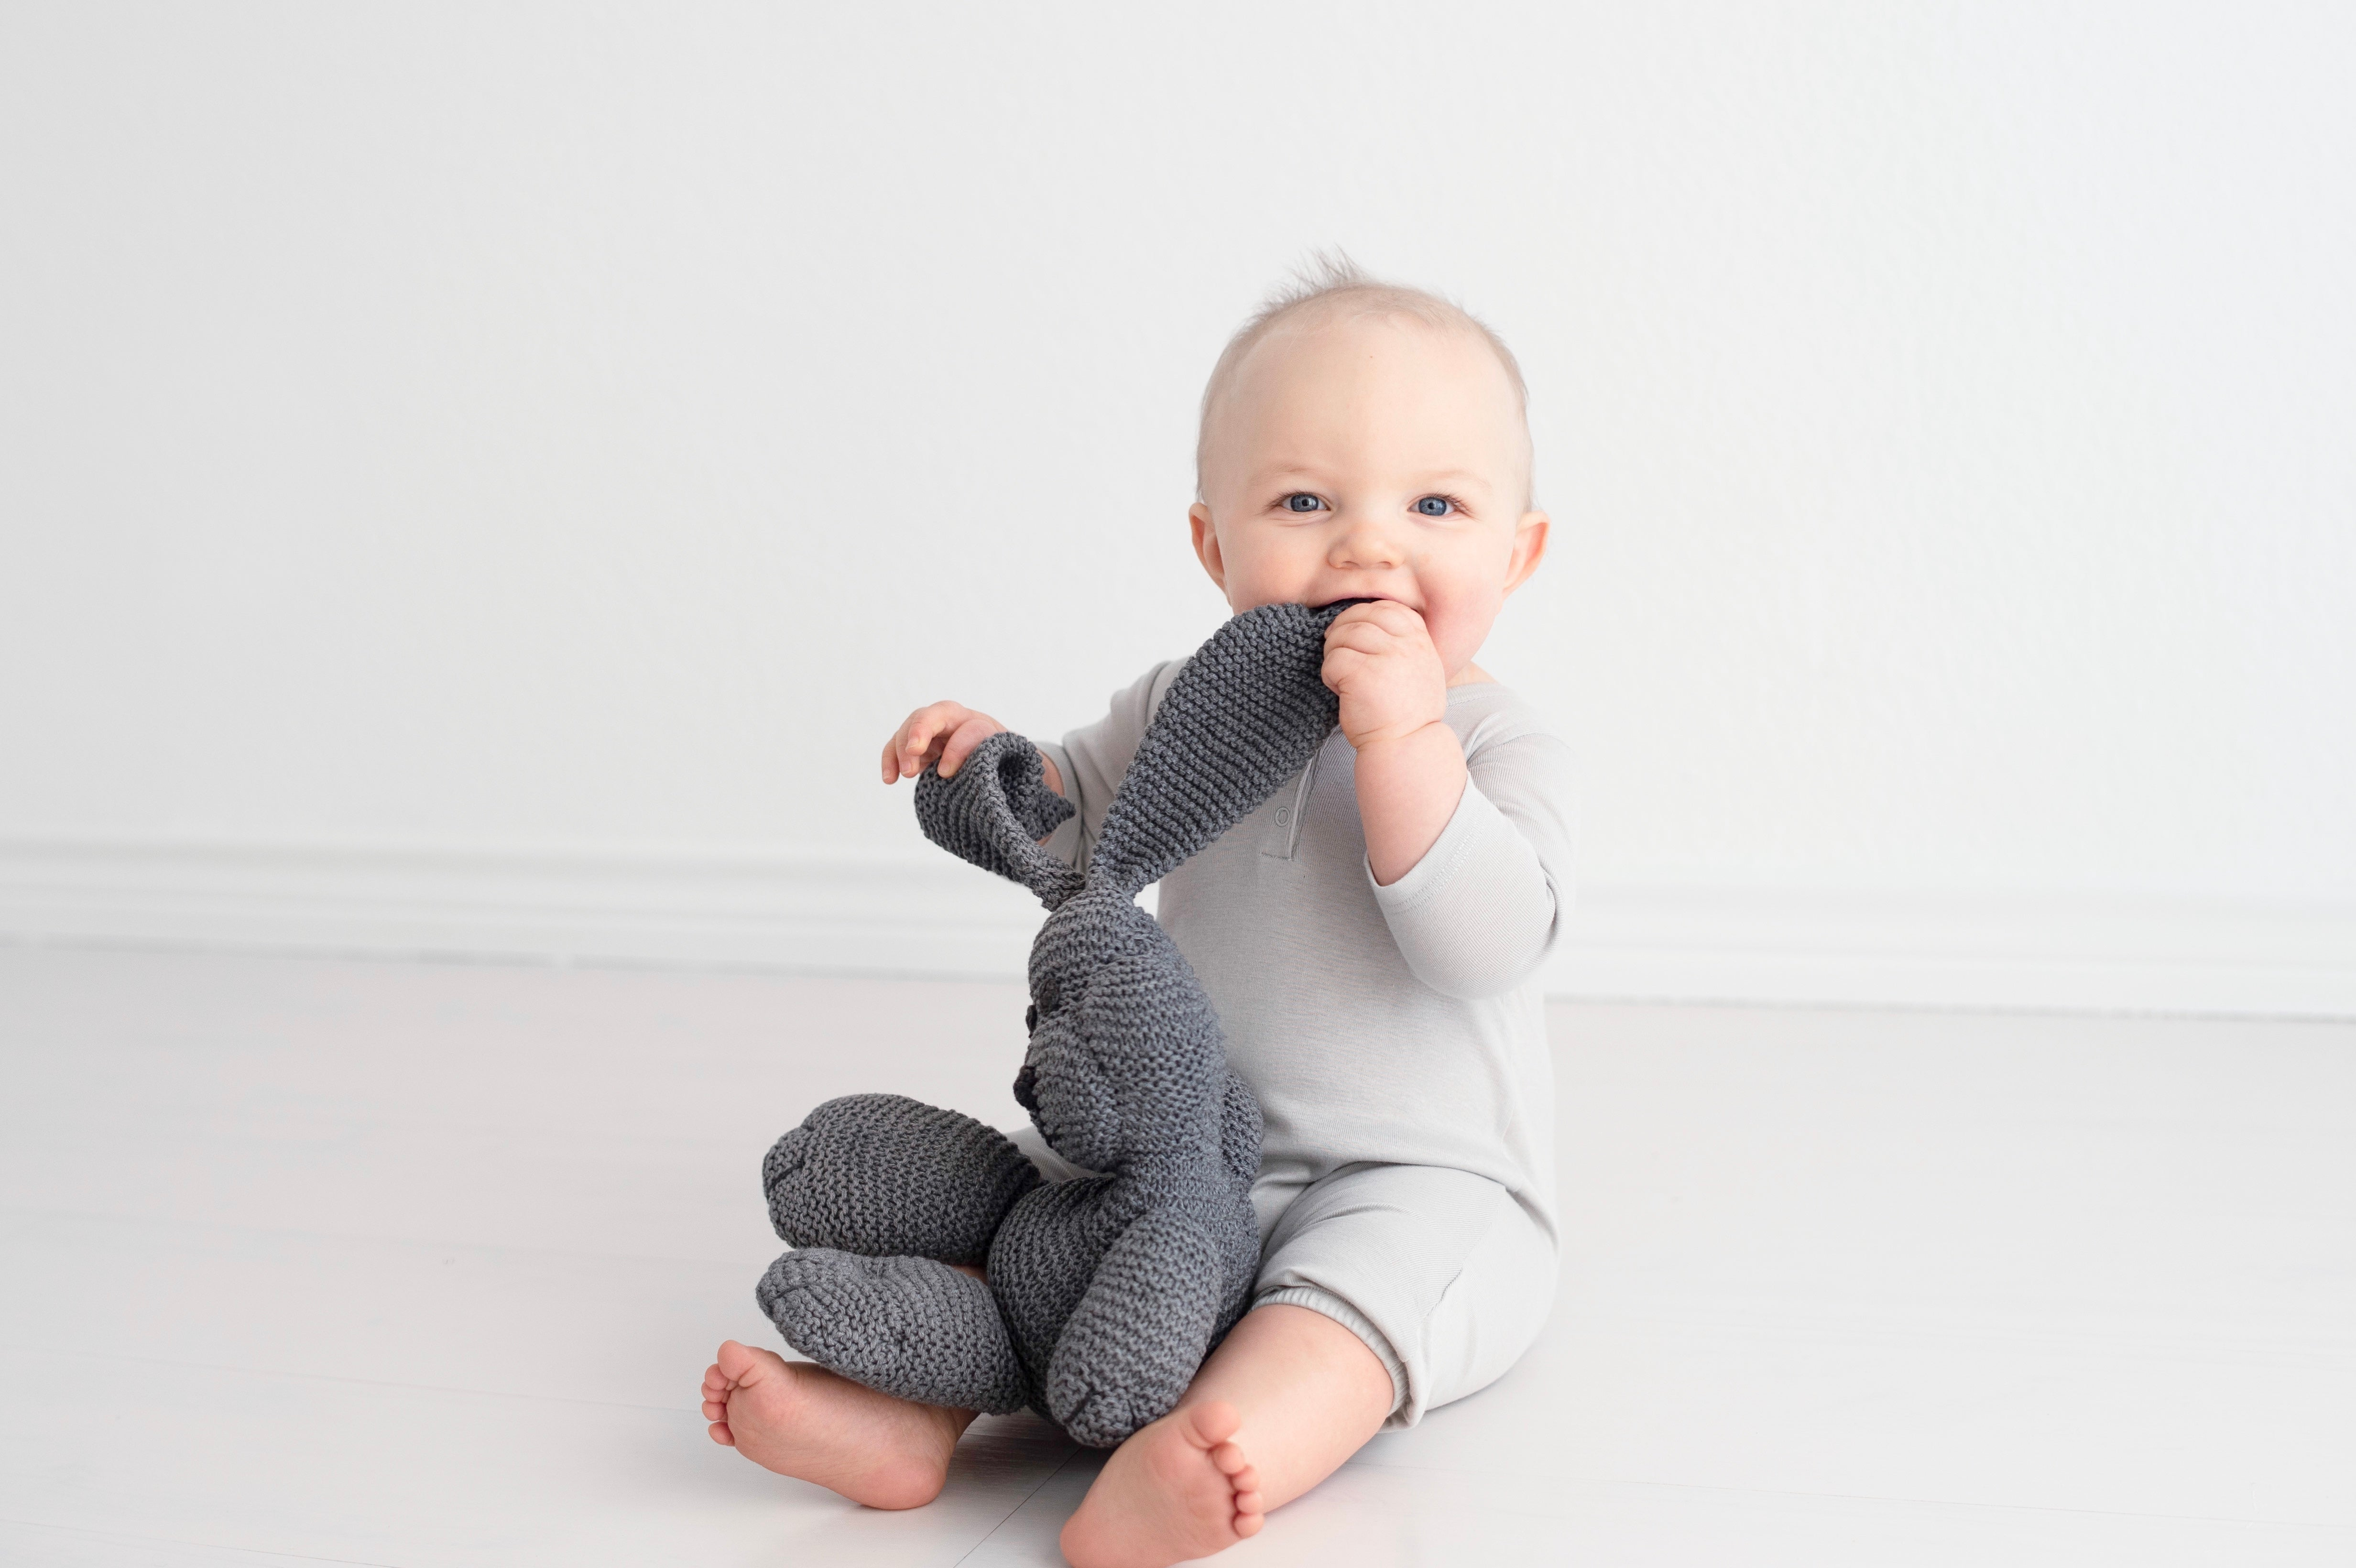 Cool grey long sleeved henley balloon coverall with charcoal color hand knit snuggle bunny organic soft toy